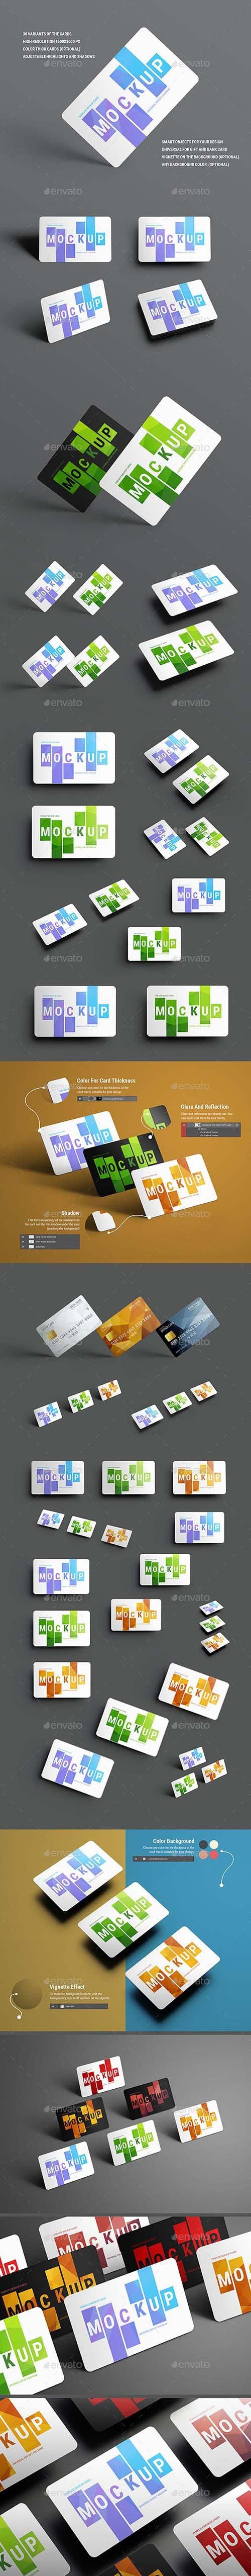 30 Mockups Universal For Gift and Bank Cards